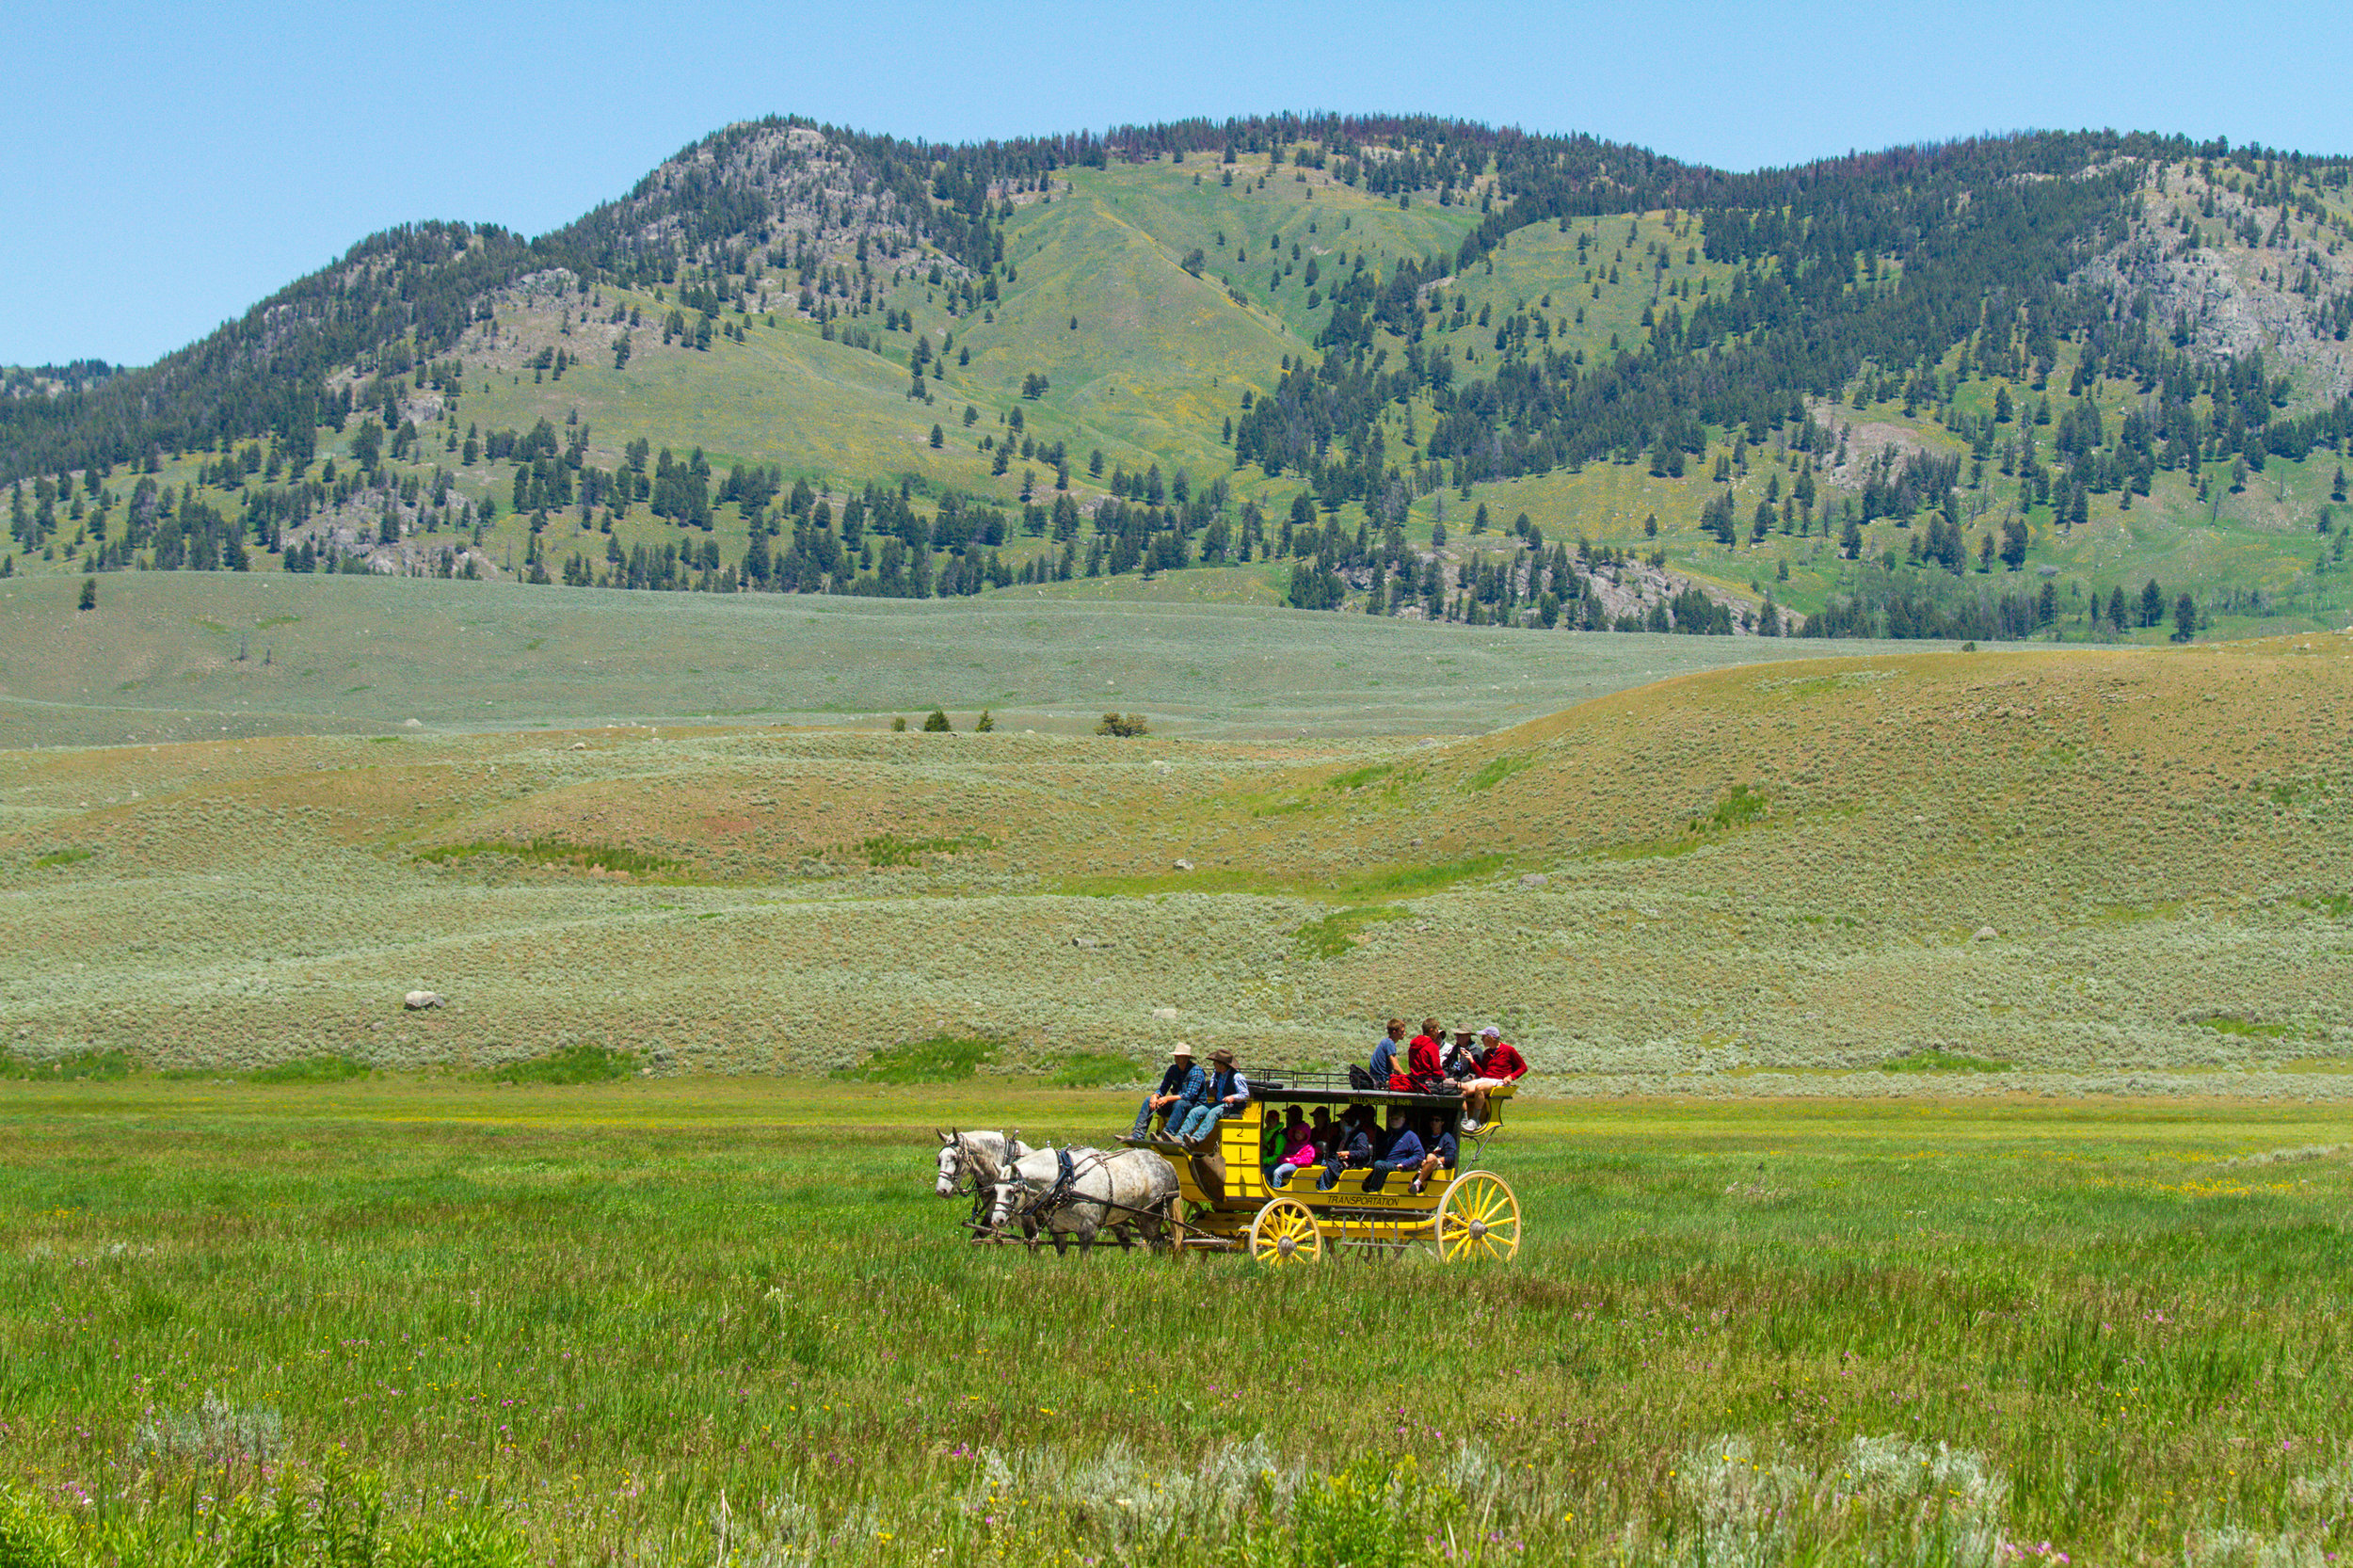 Lamar Valley, Yellowstone National Park, Image # 5093